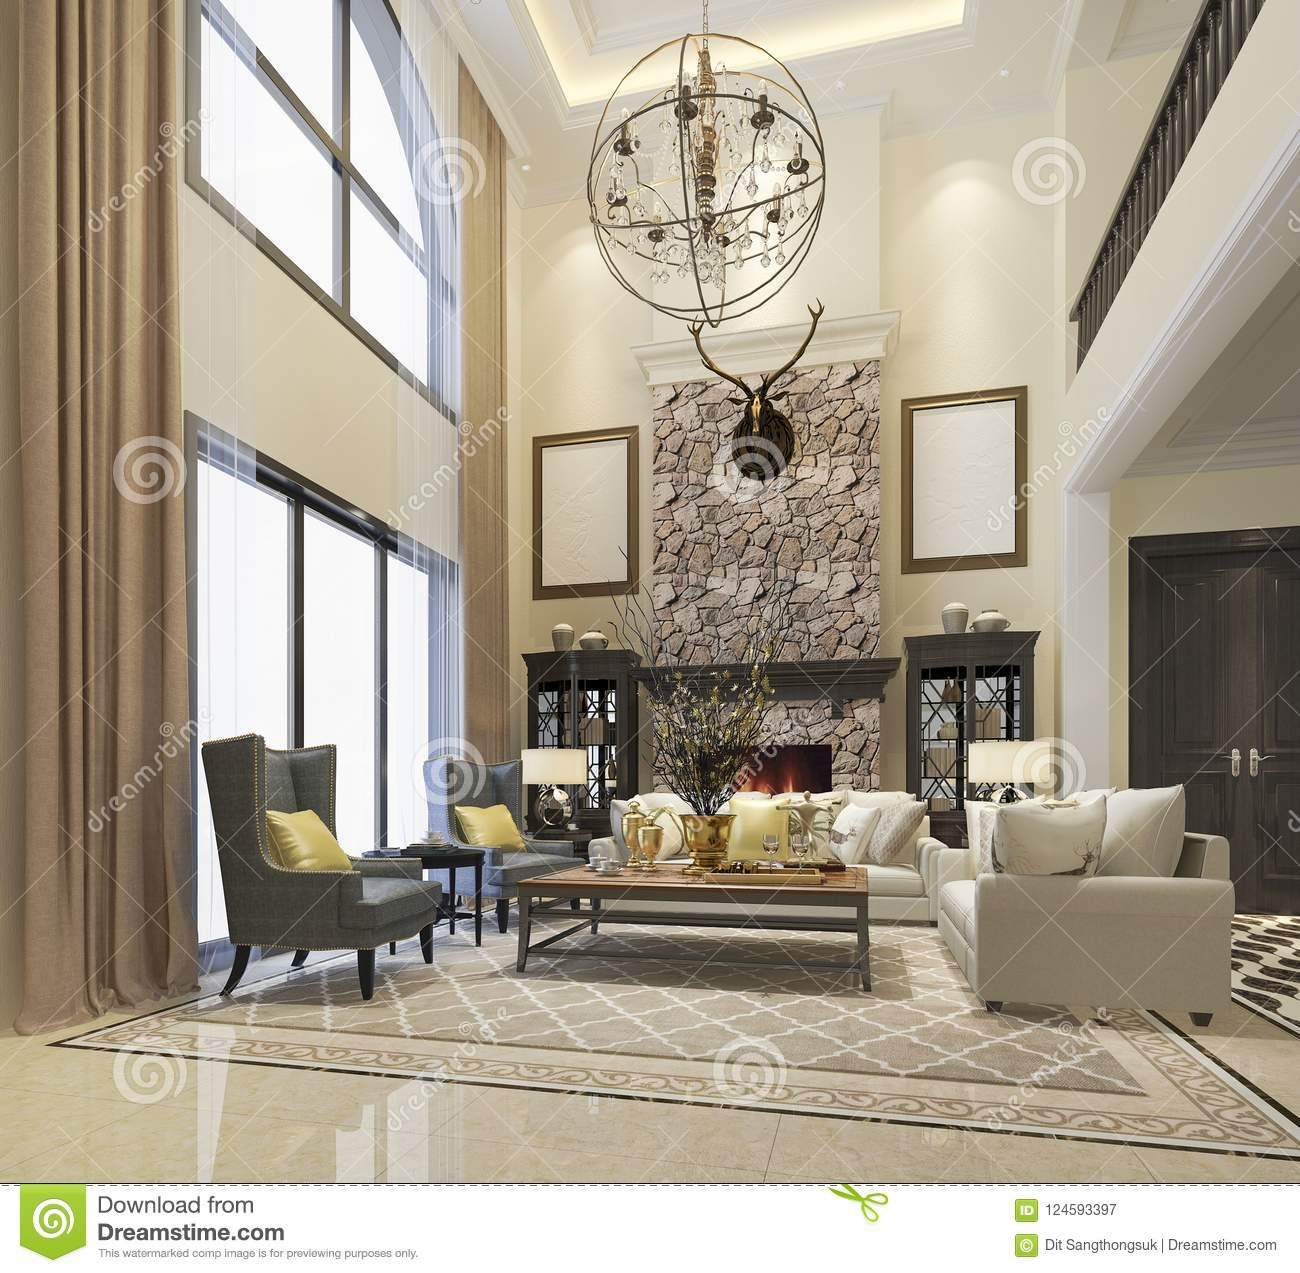 New Home Designs Latest Luxury Living Rooms Interior: 3d Rendering Luxury And Modern Classic Living Room With